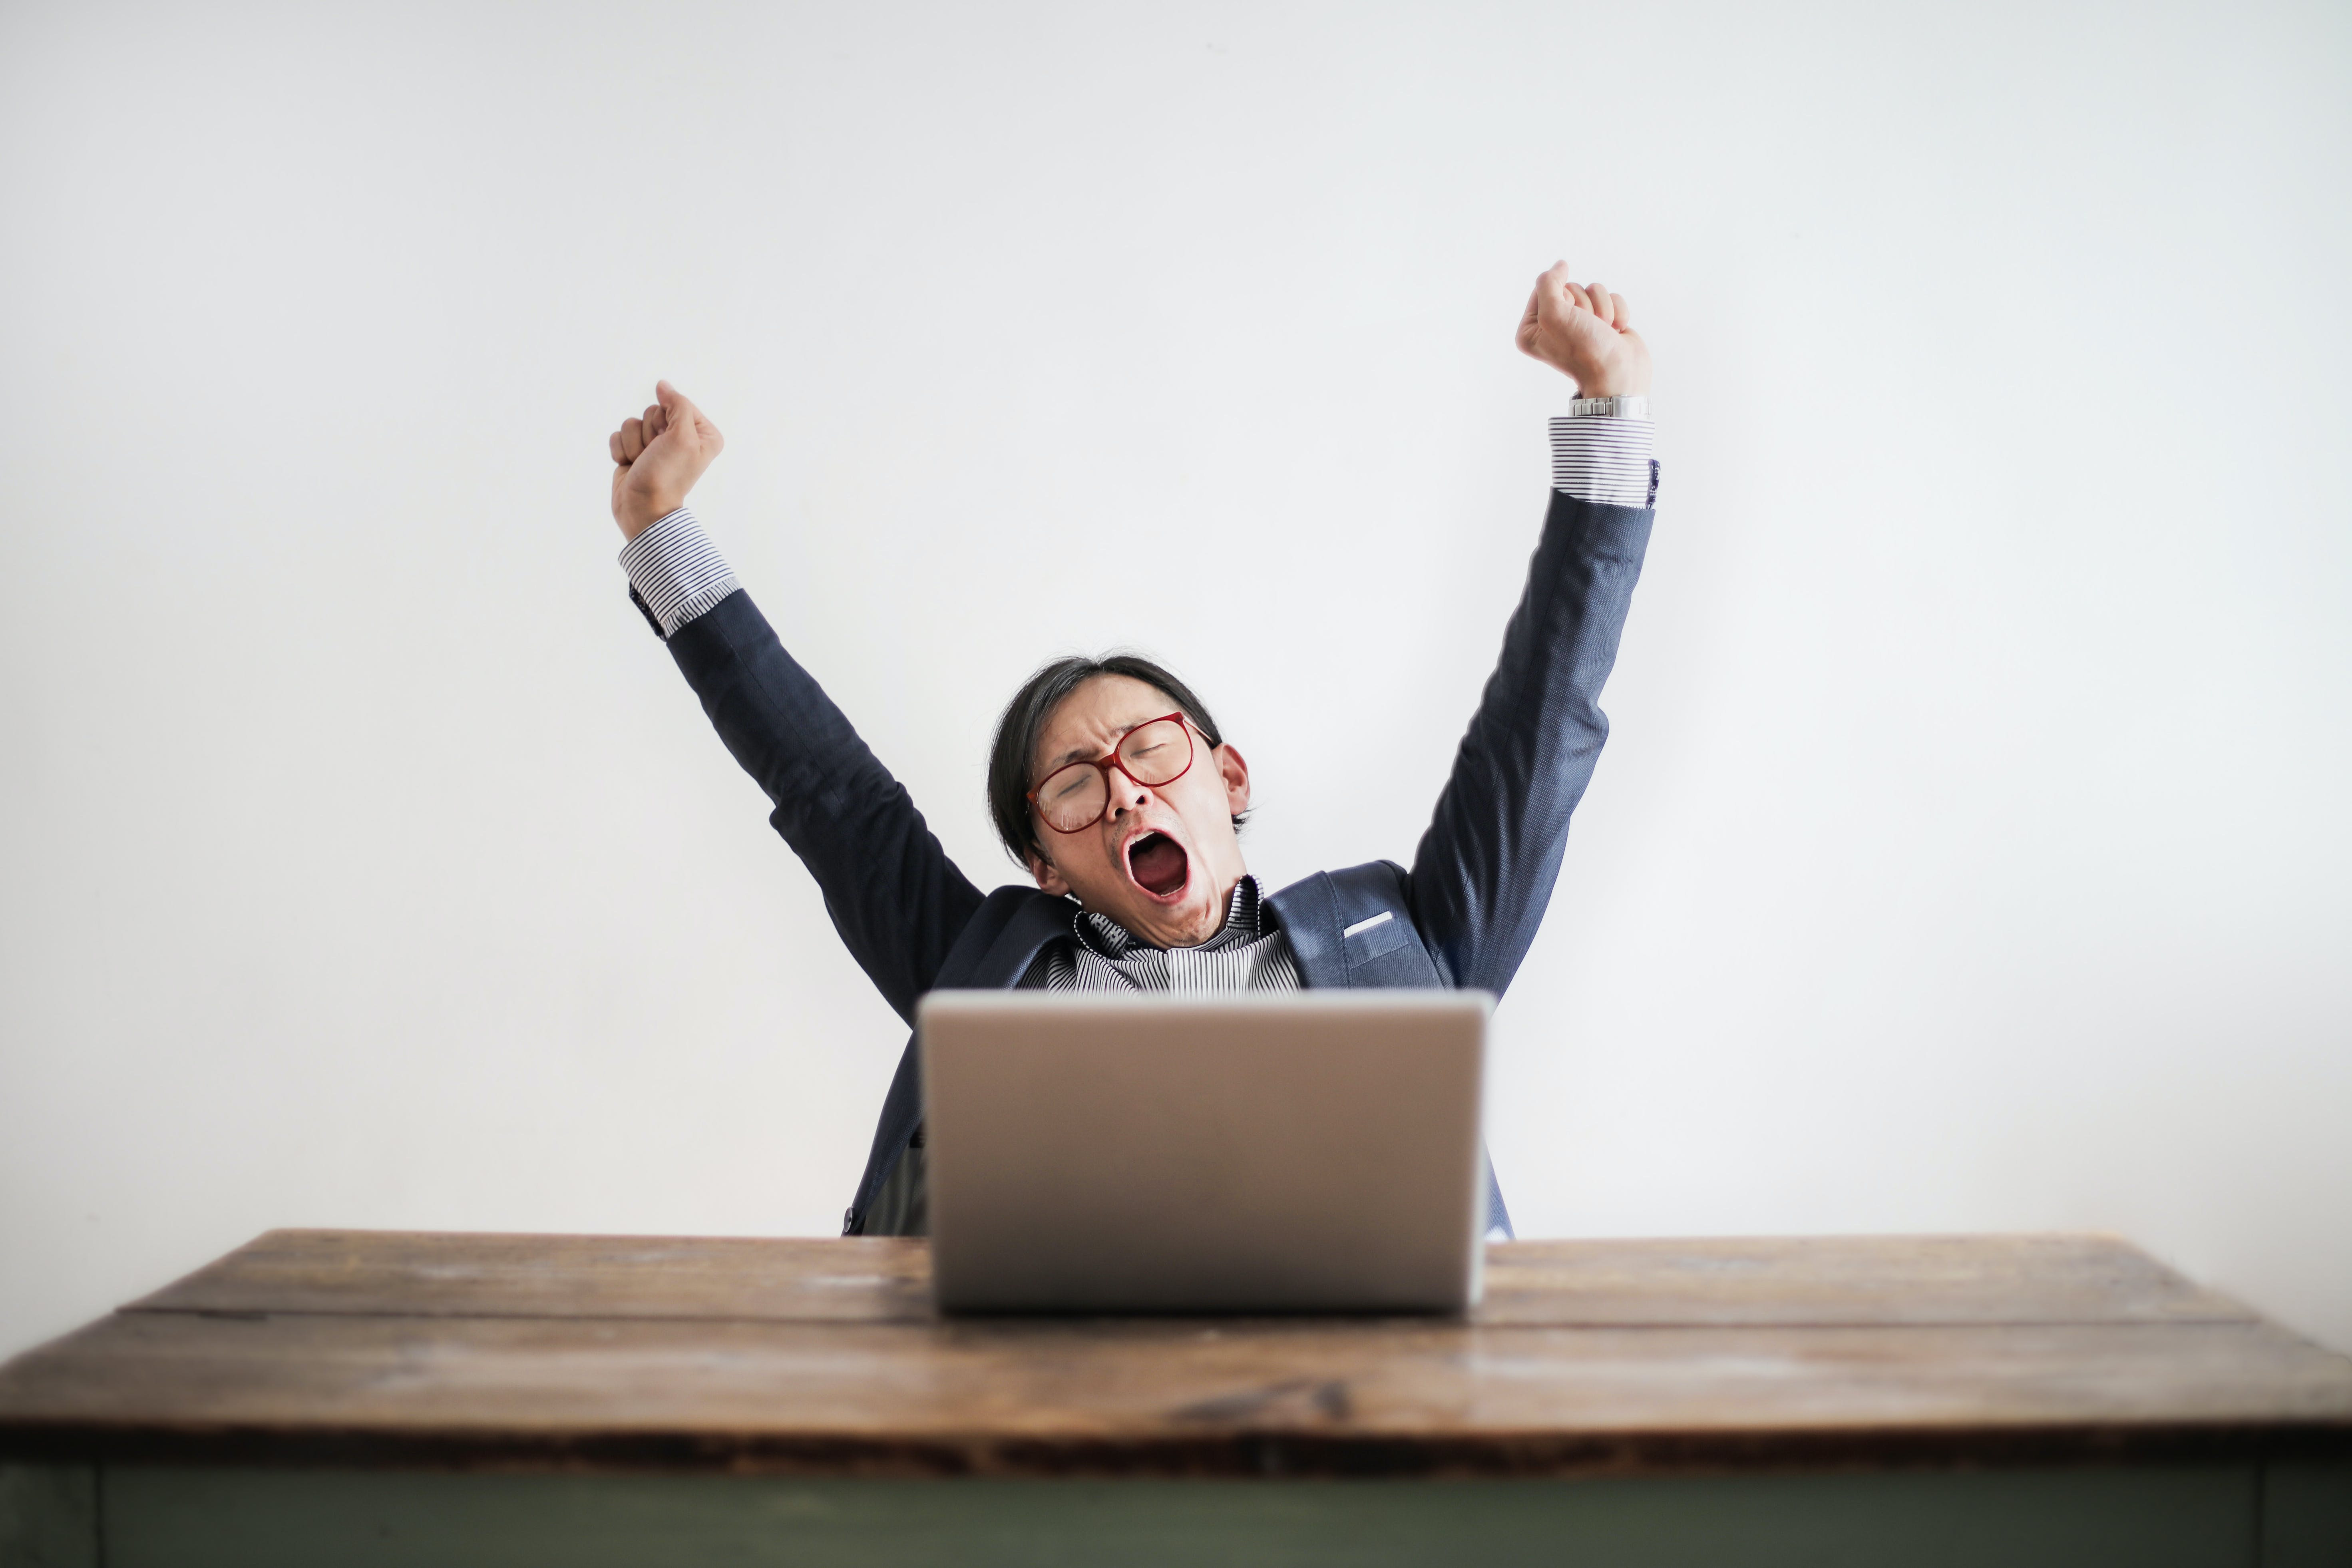 Photo of Yawning Man with His Hands Up and Eyes Closed Sitting at a Table with His Laptop